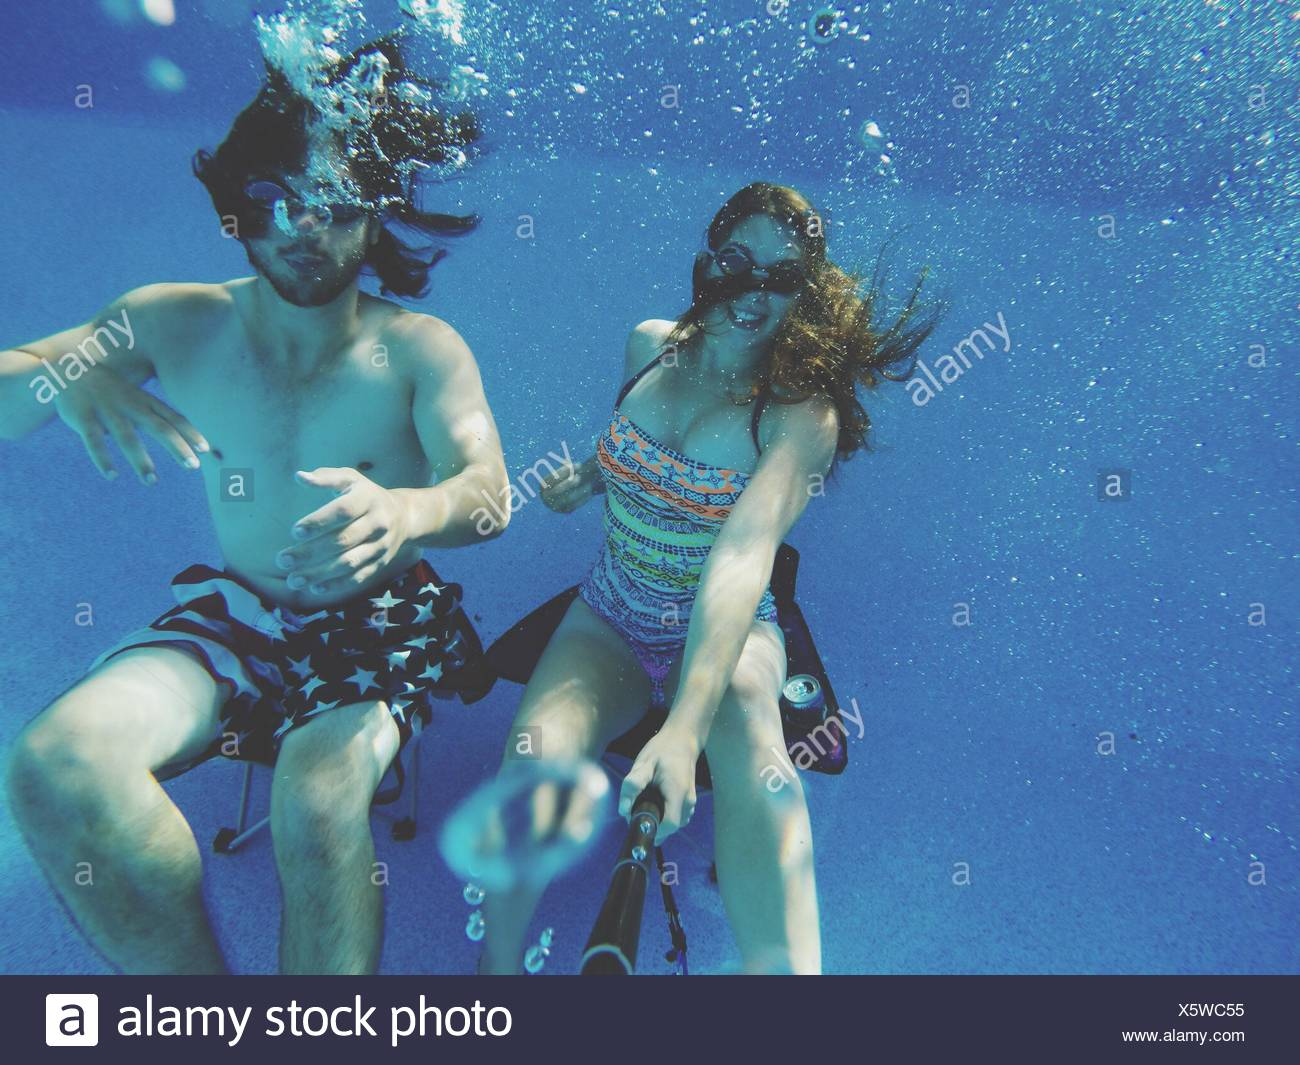 Couple In Swimming Pool - Stock Image